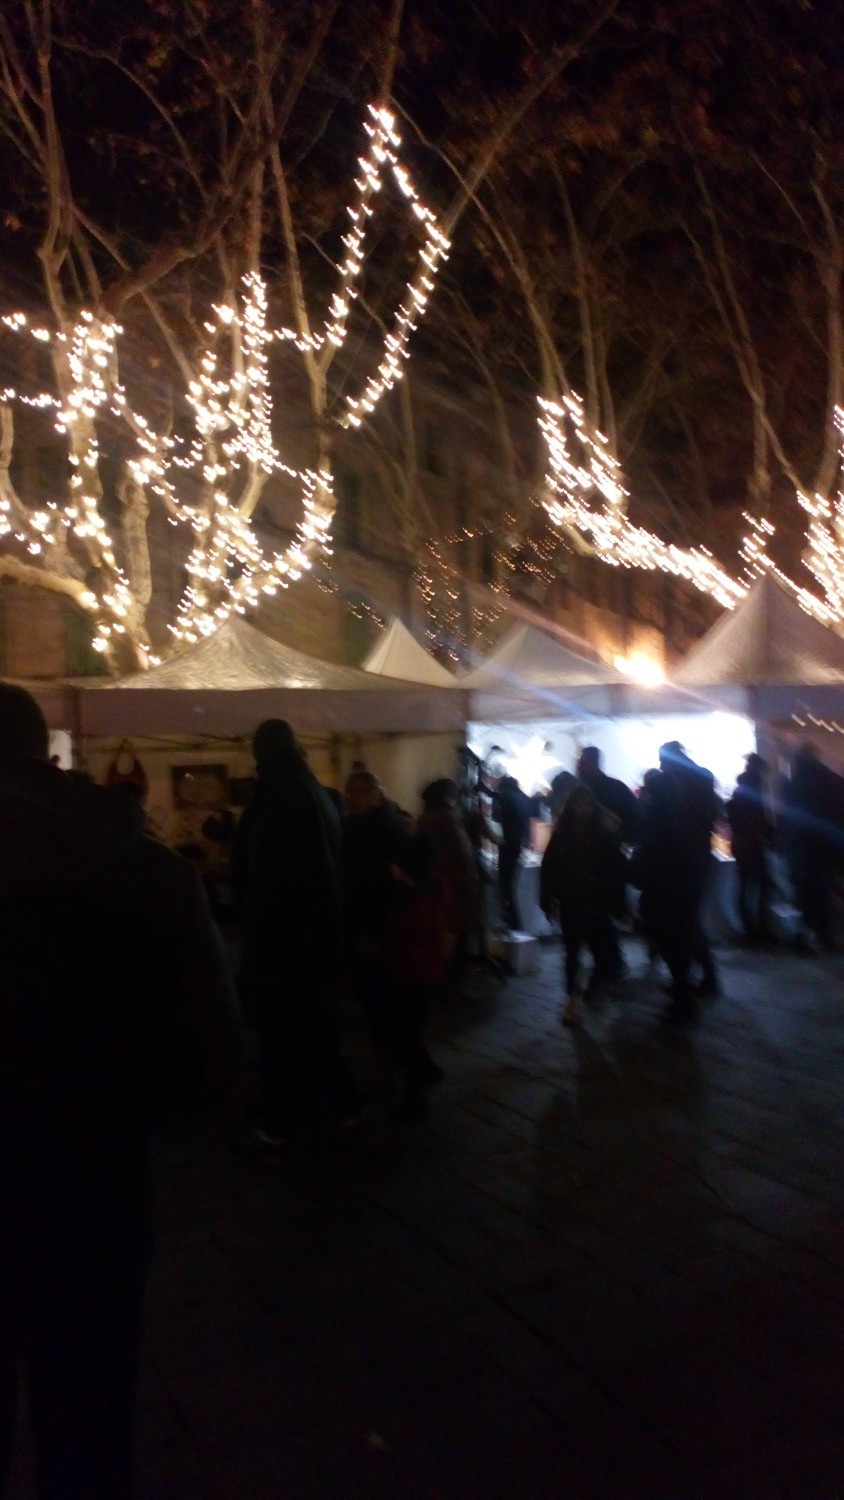 white lights in the plane trees above the market tents